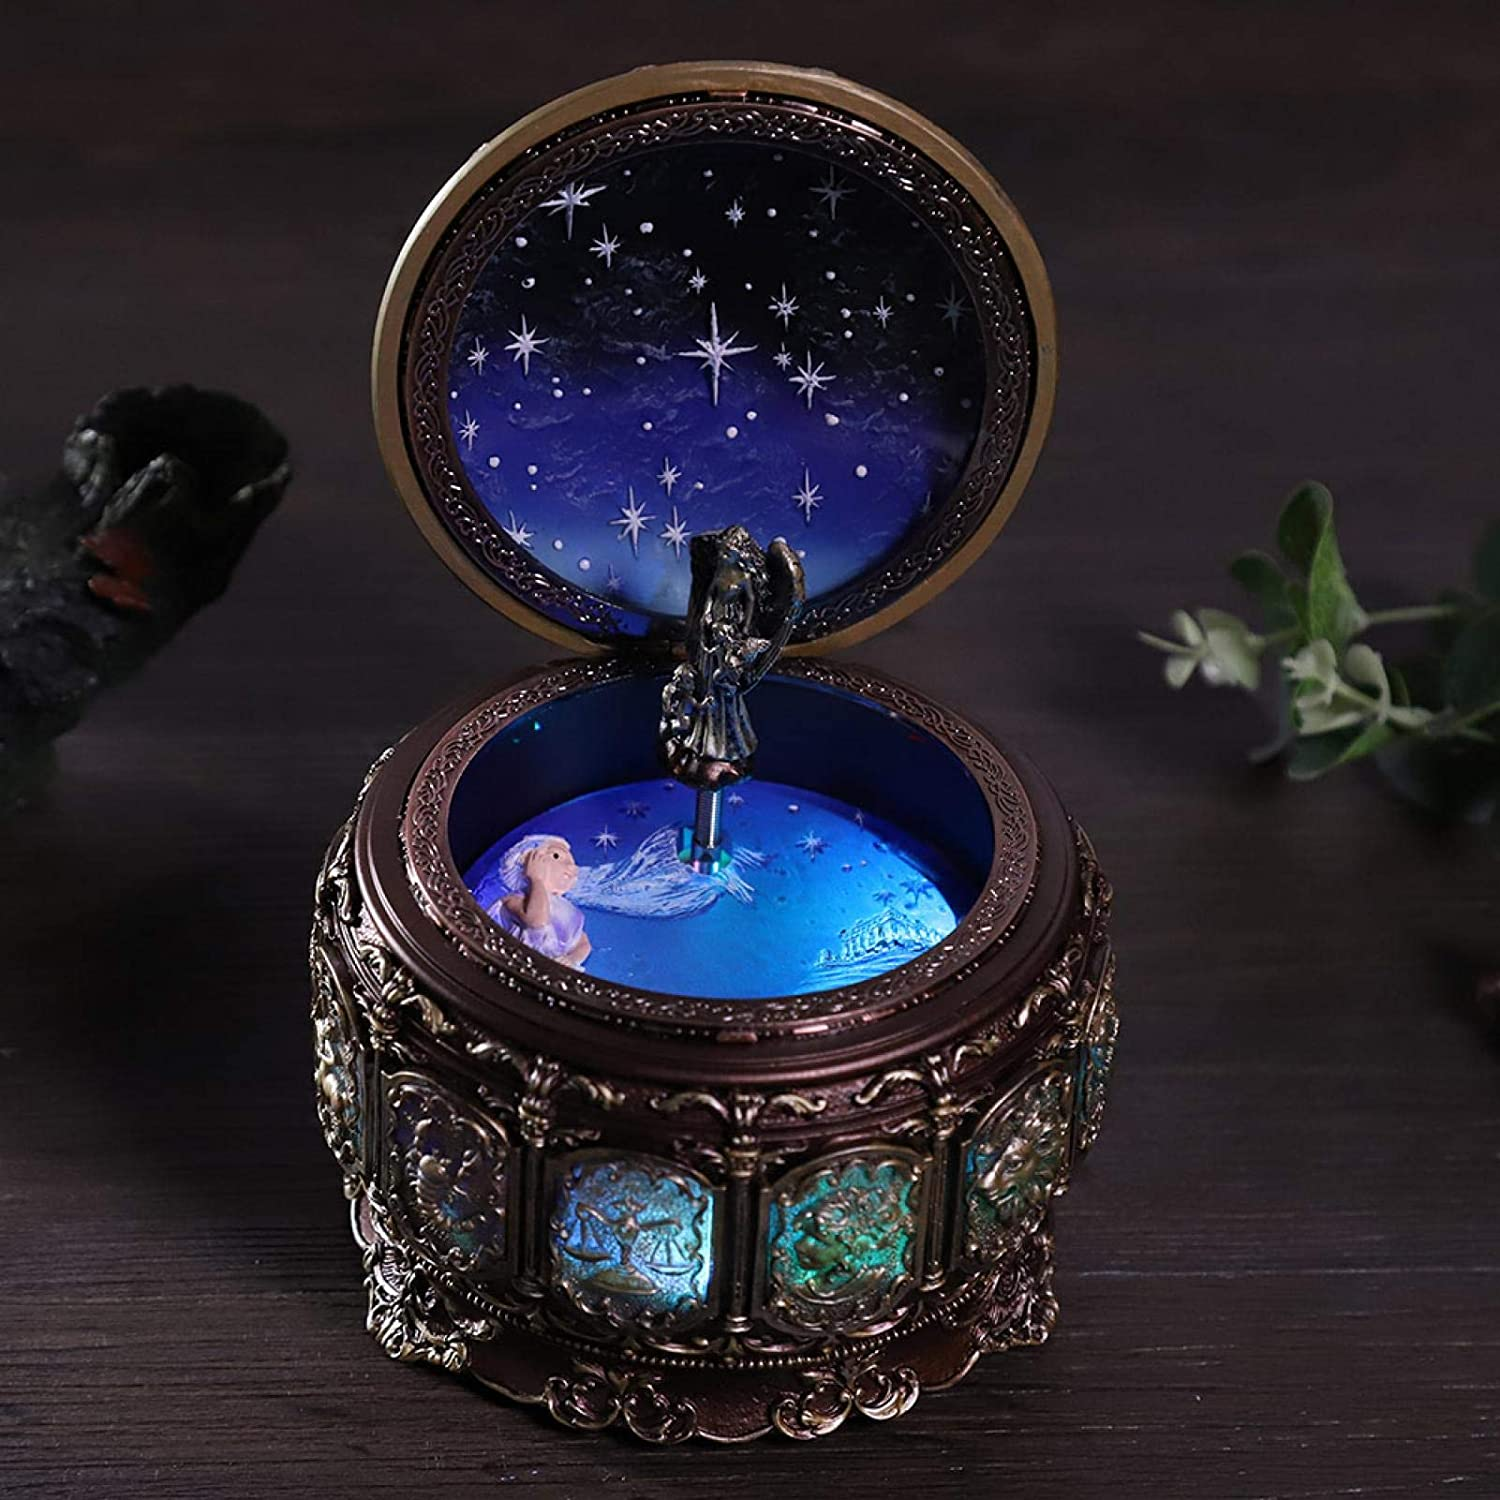 Free shipping anywhere in Some reservation the nation Omabeta Musical Box 12 Constellations Valenti for Music Gift